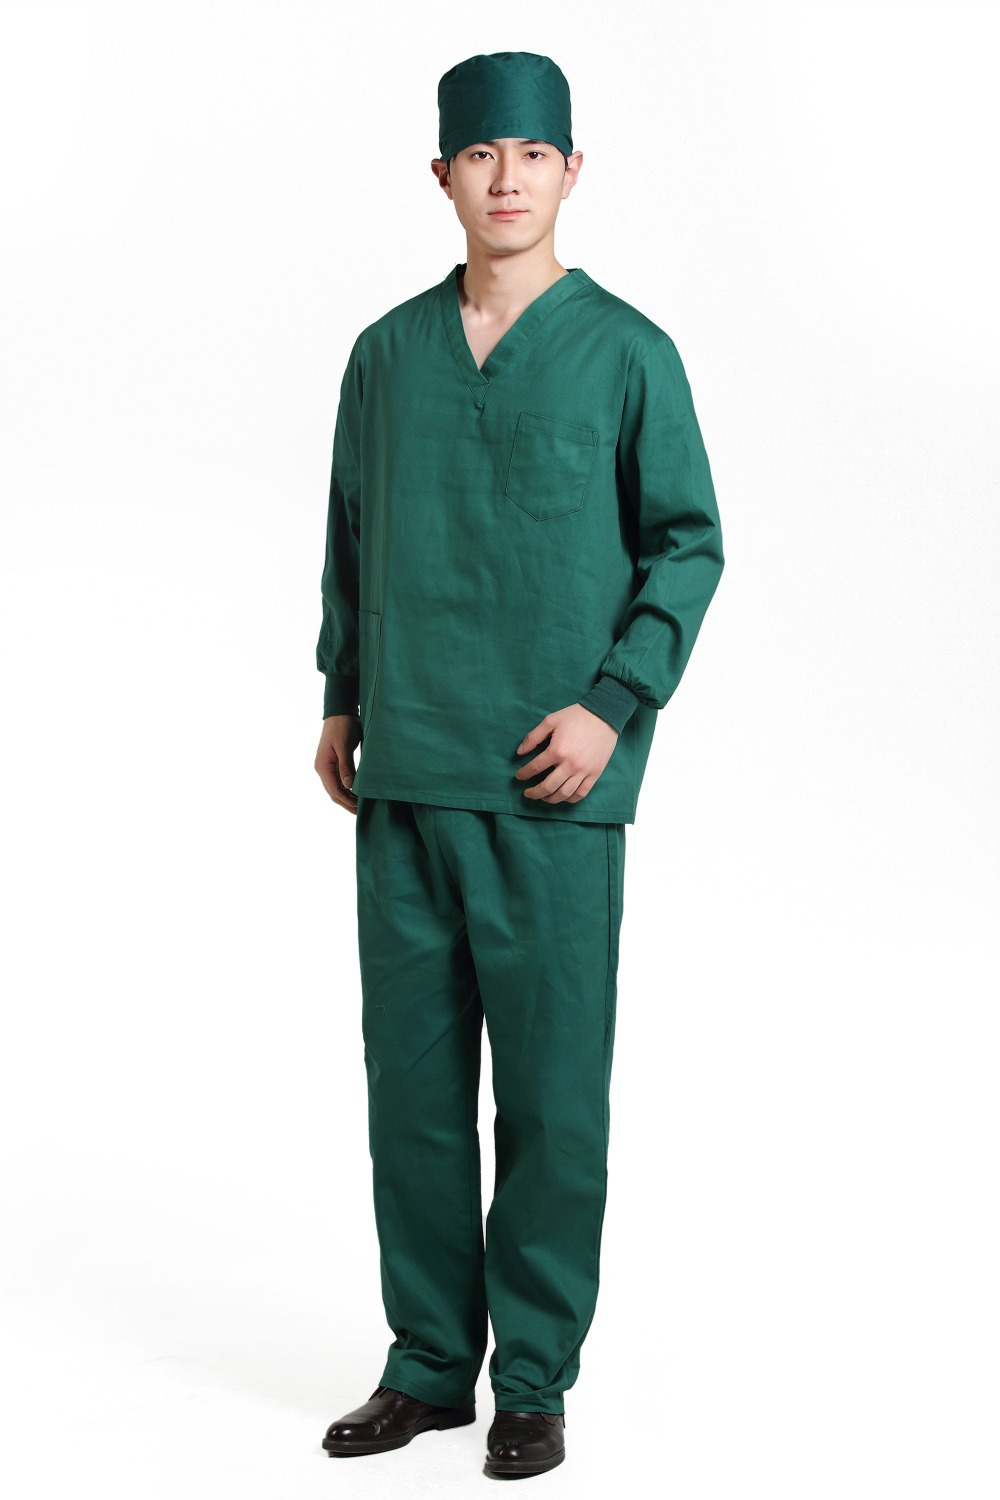 2015 OEM surgical clothing surgical gowns hospital uniform scrub sets(China (Mainland))